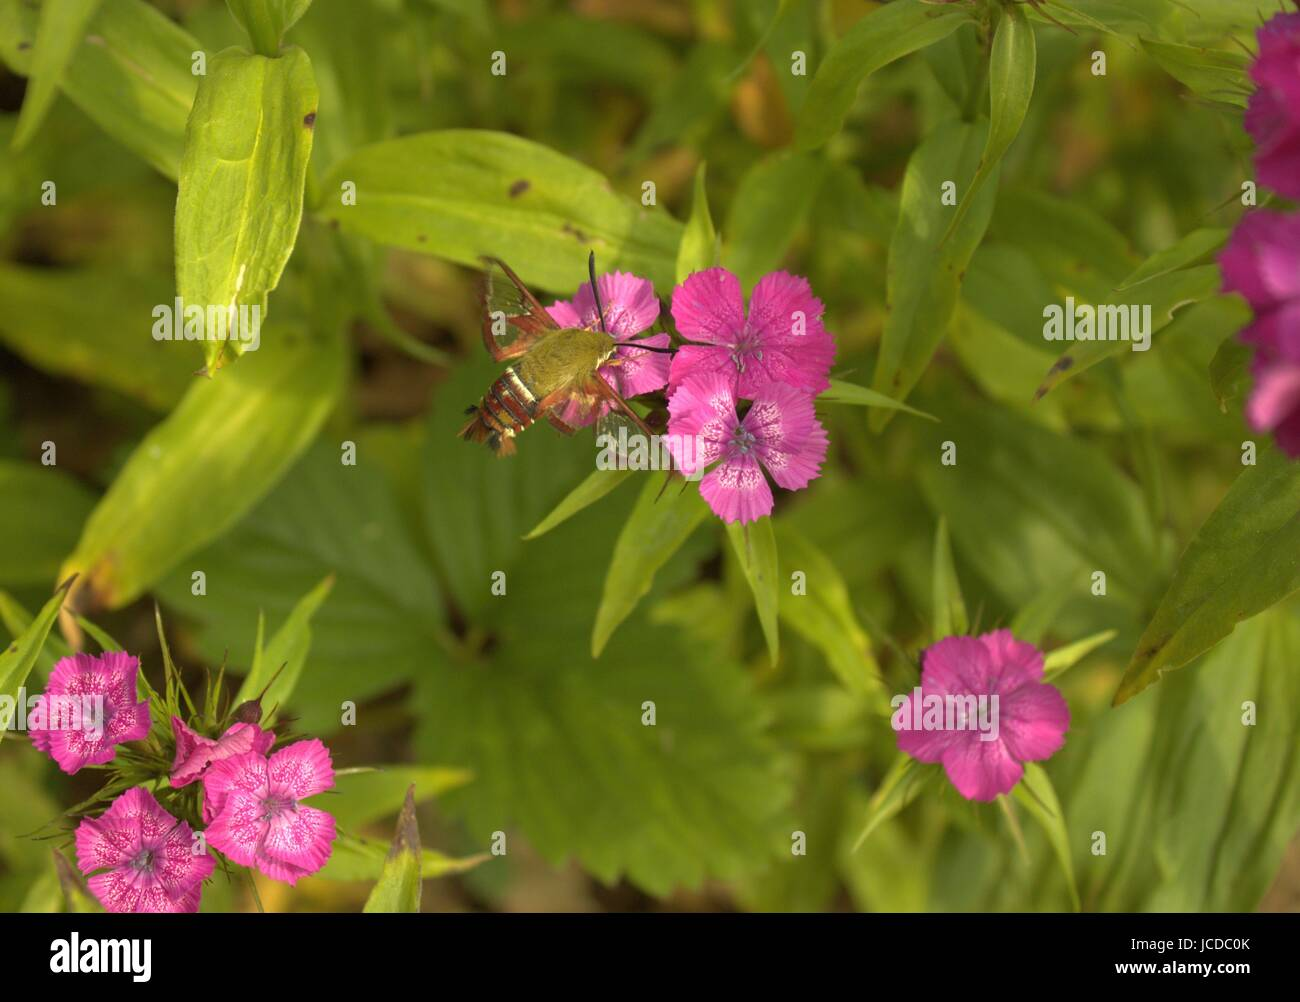 A Hummingbird Moth On Some Sweet Williams Flowers - Stock Image